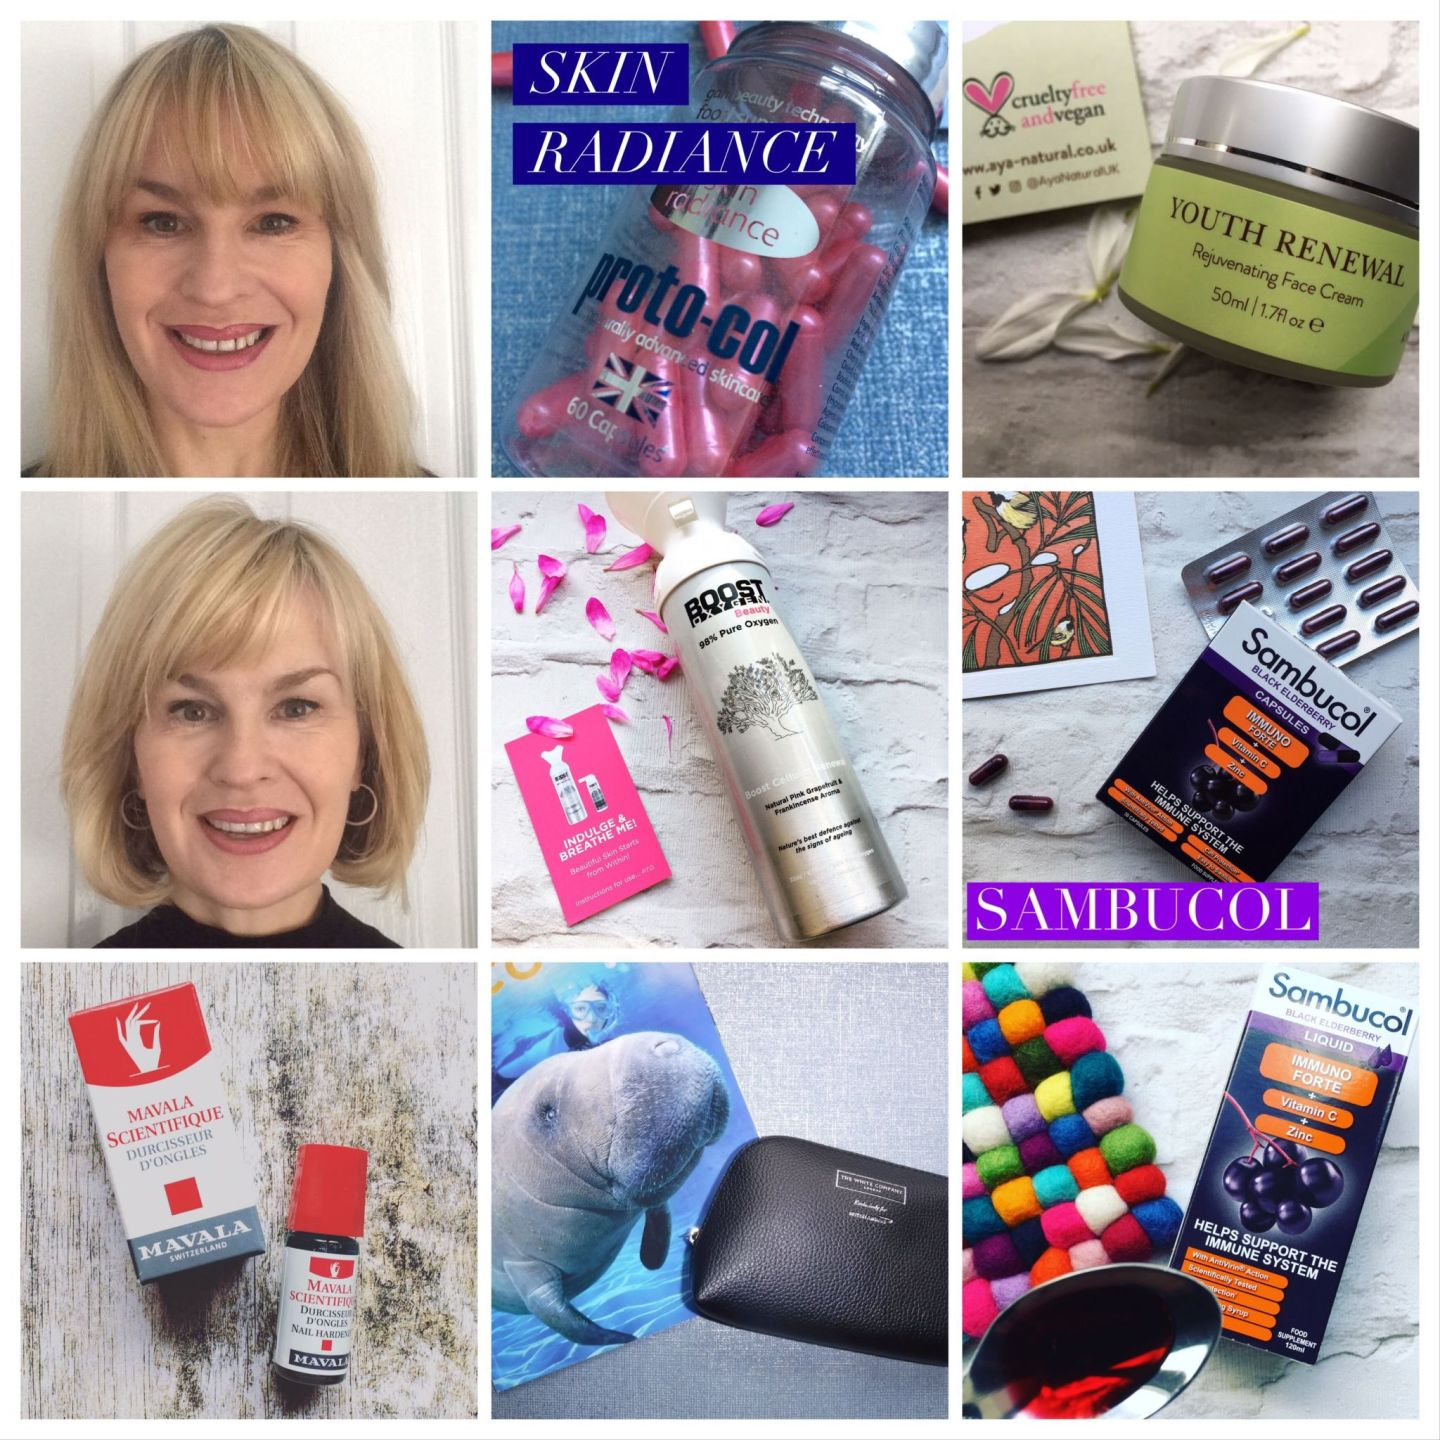 Proto-col skin radiance. Aya Natural Youth renewal cream. Boots Beauty Oxygen. Sambucol capsules and syrup. White Company amenity kit. Mavala Nail care. Picture of manatee. Picture of Emily